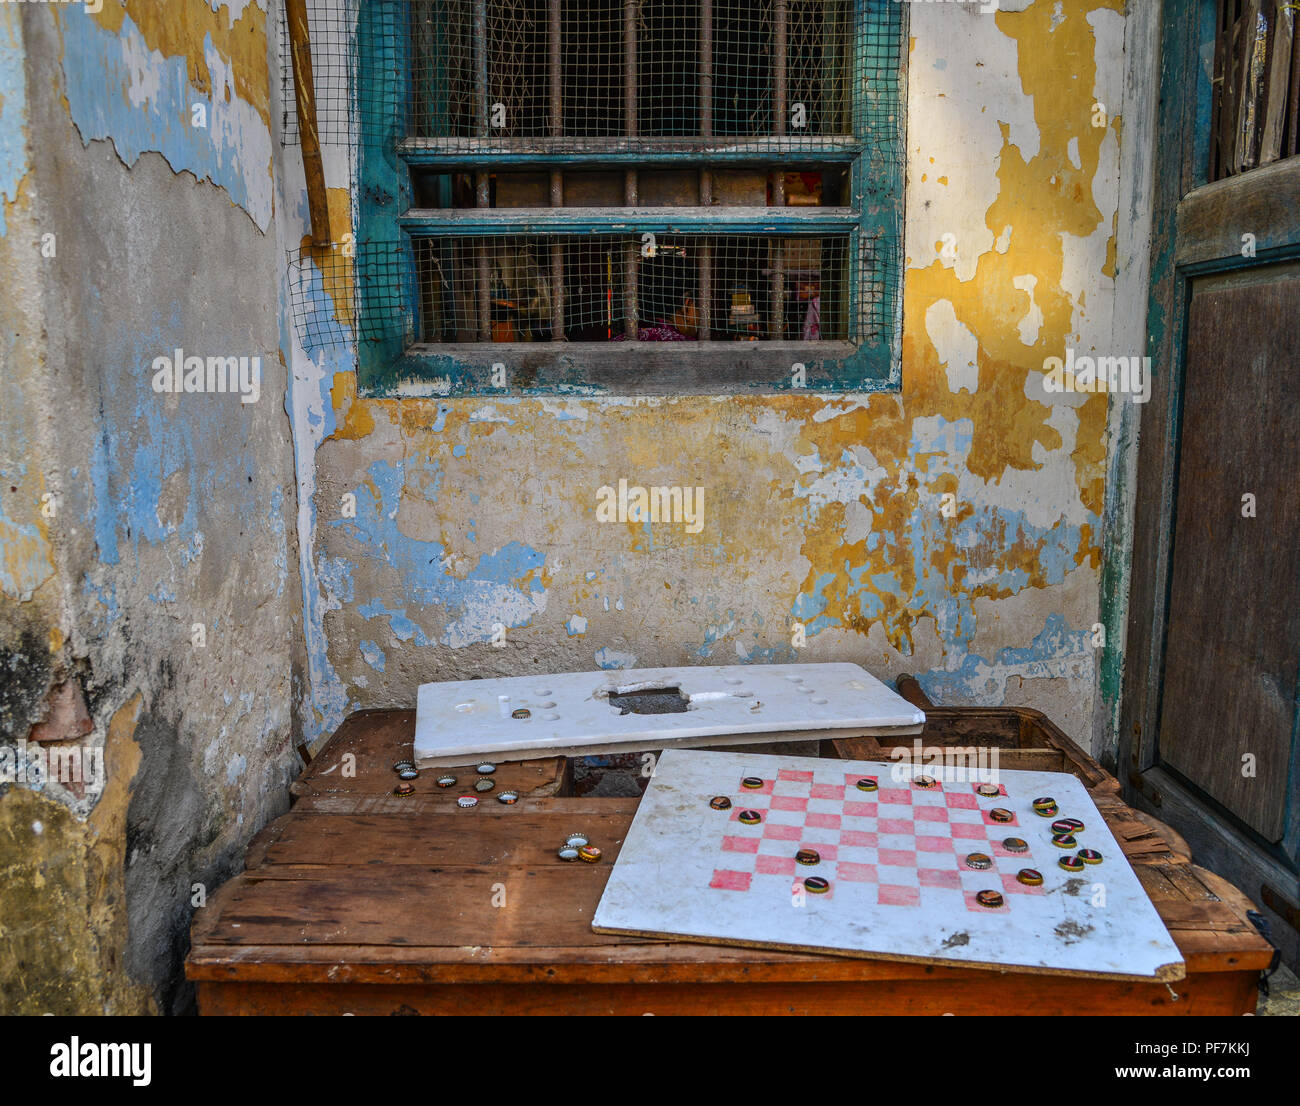 Yangon, Myanmar - Feb 1, 2017. Chessboards at old house in Yangon, Myanmar. Yangon is Myanmar largest city and its most important commercial centre. - Stock Image